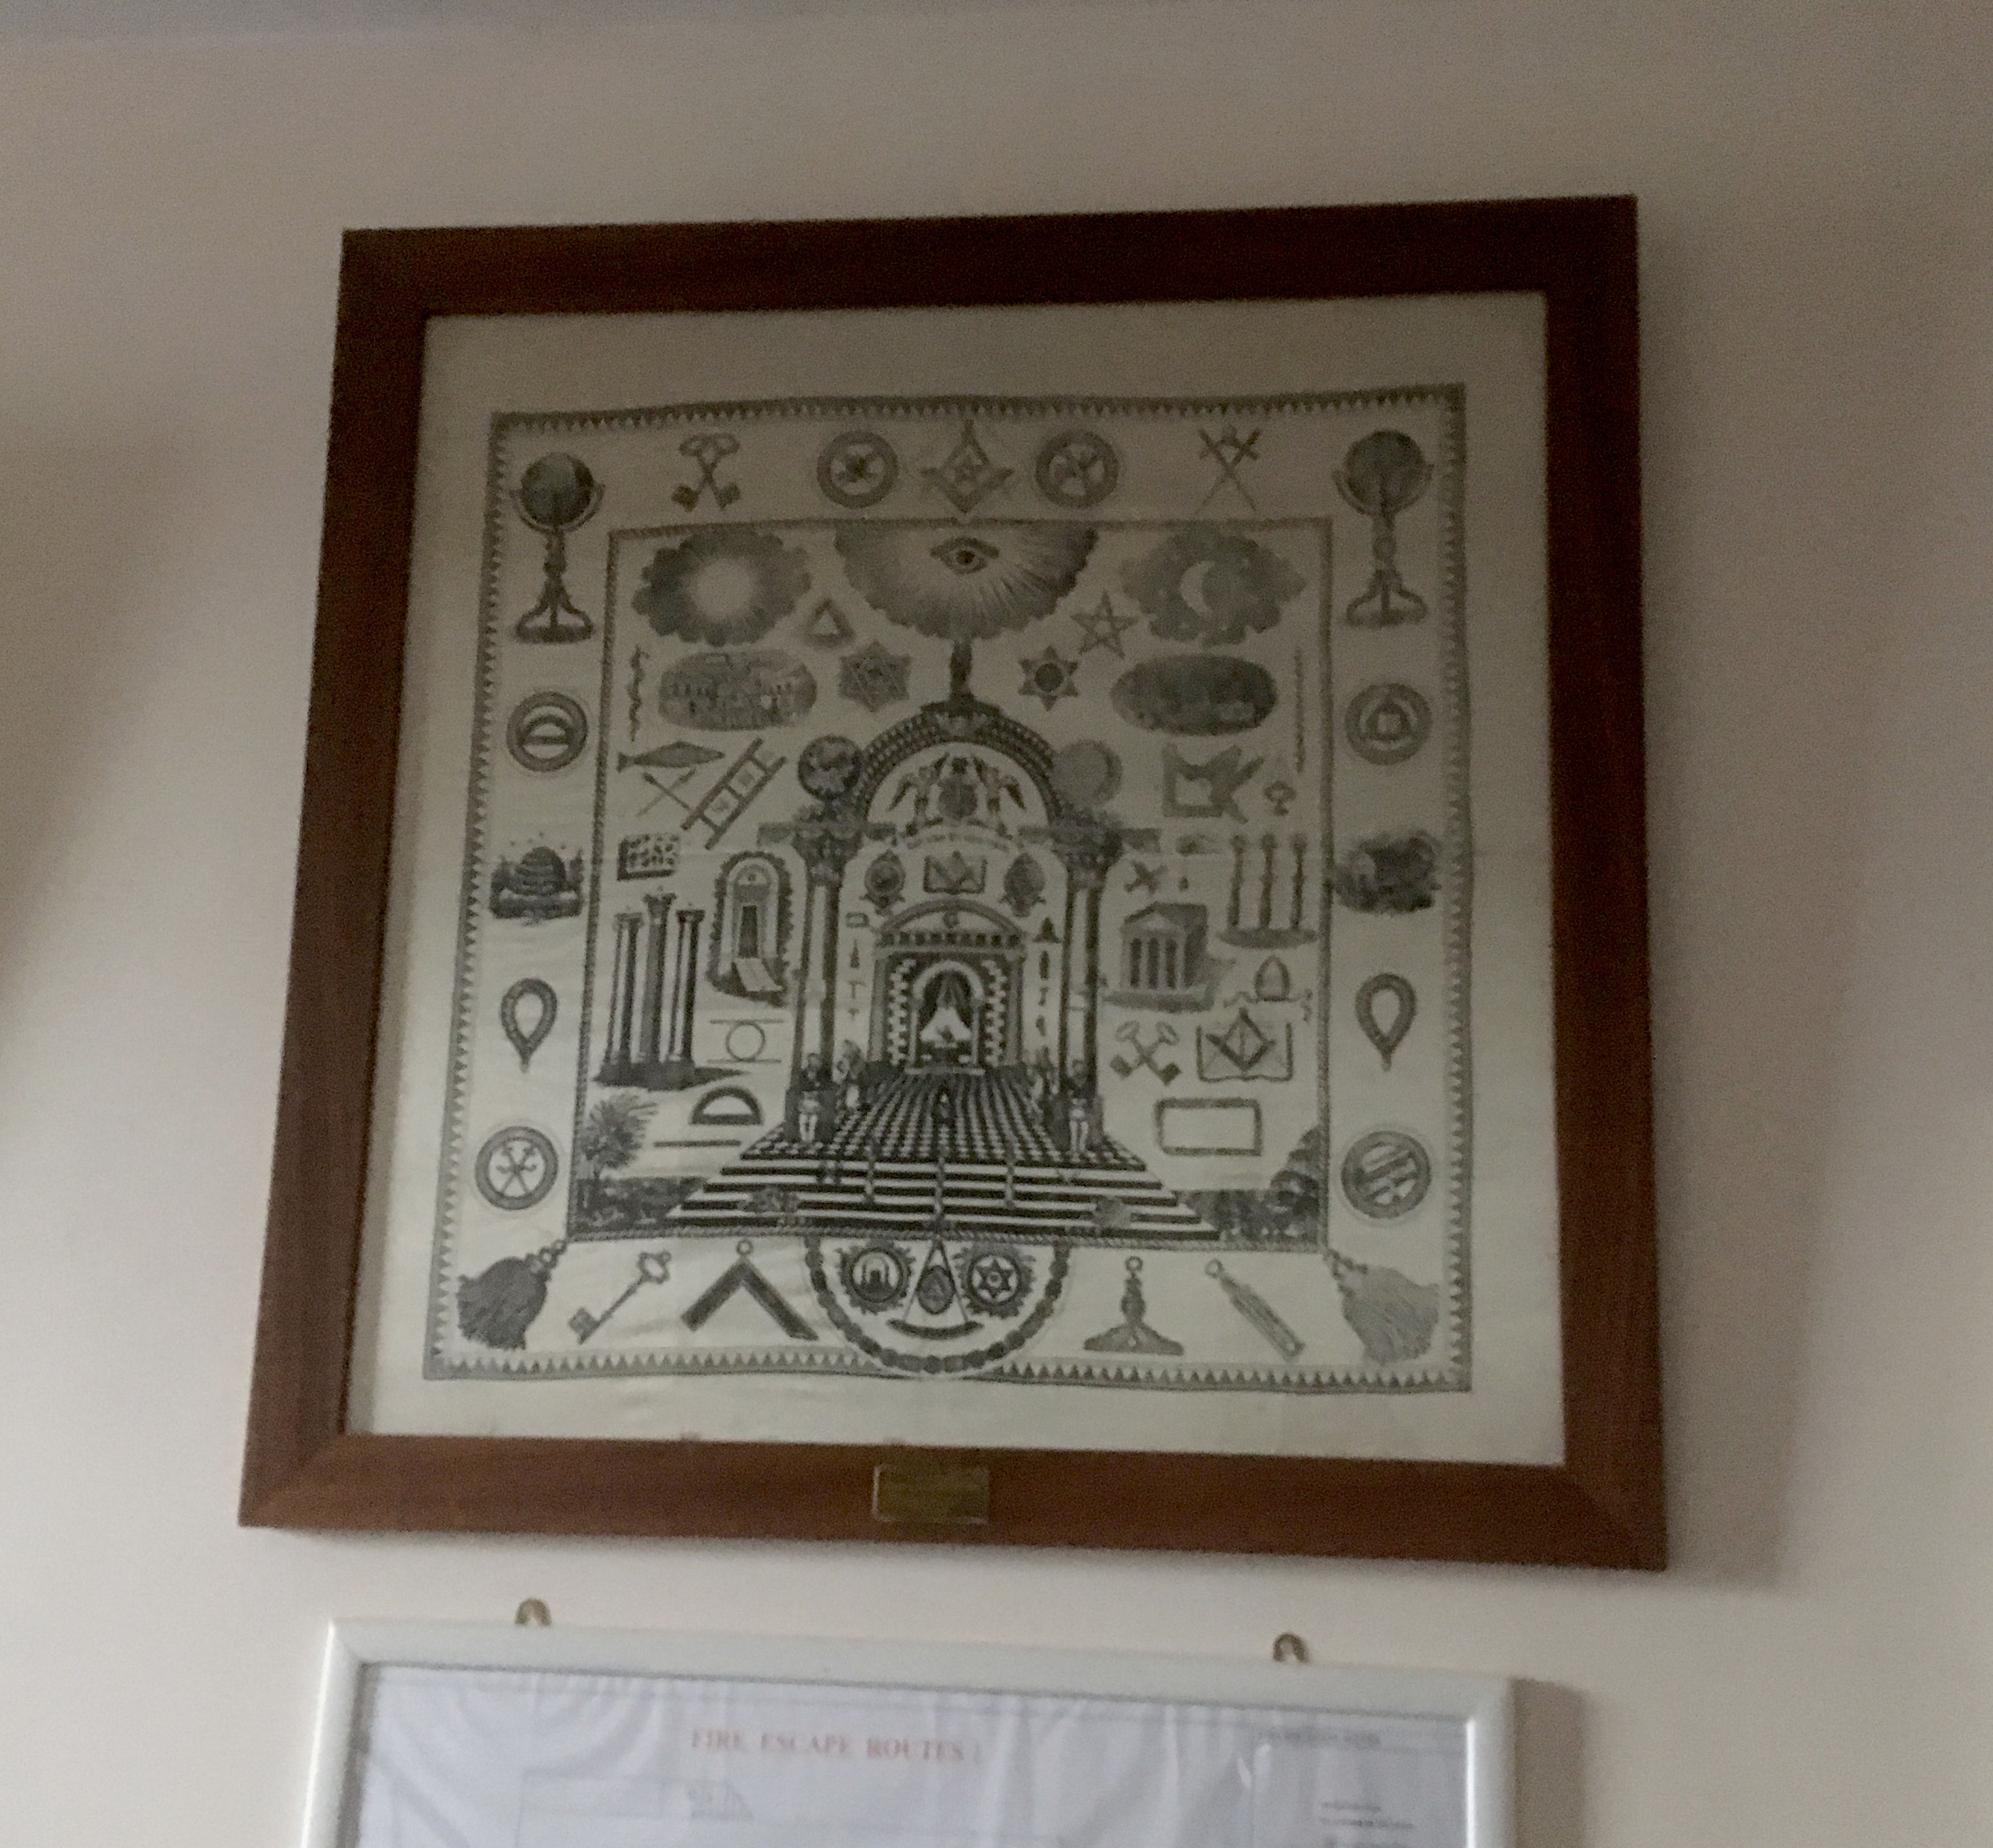 Picture of the Scarf in a frame